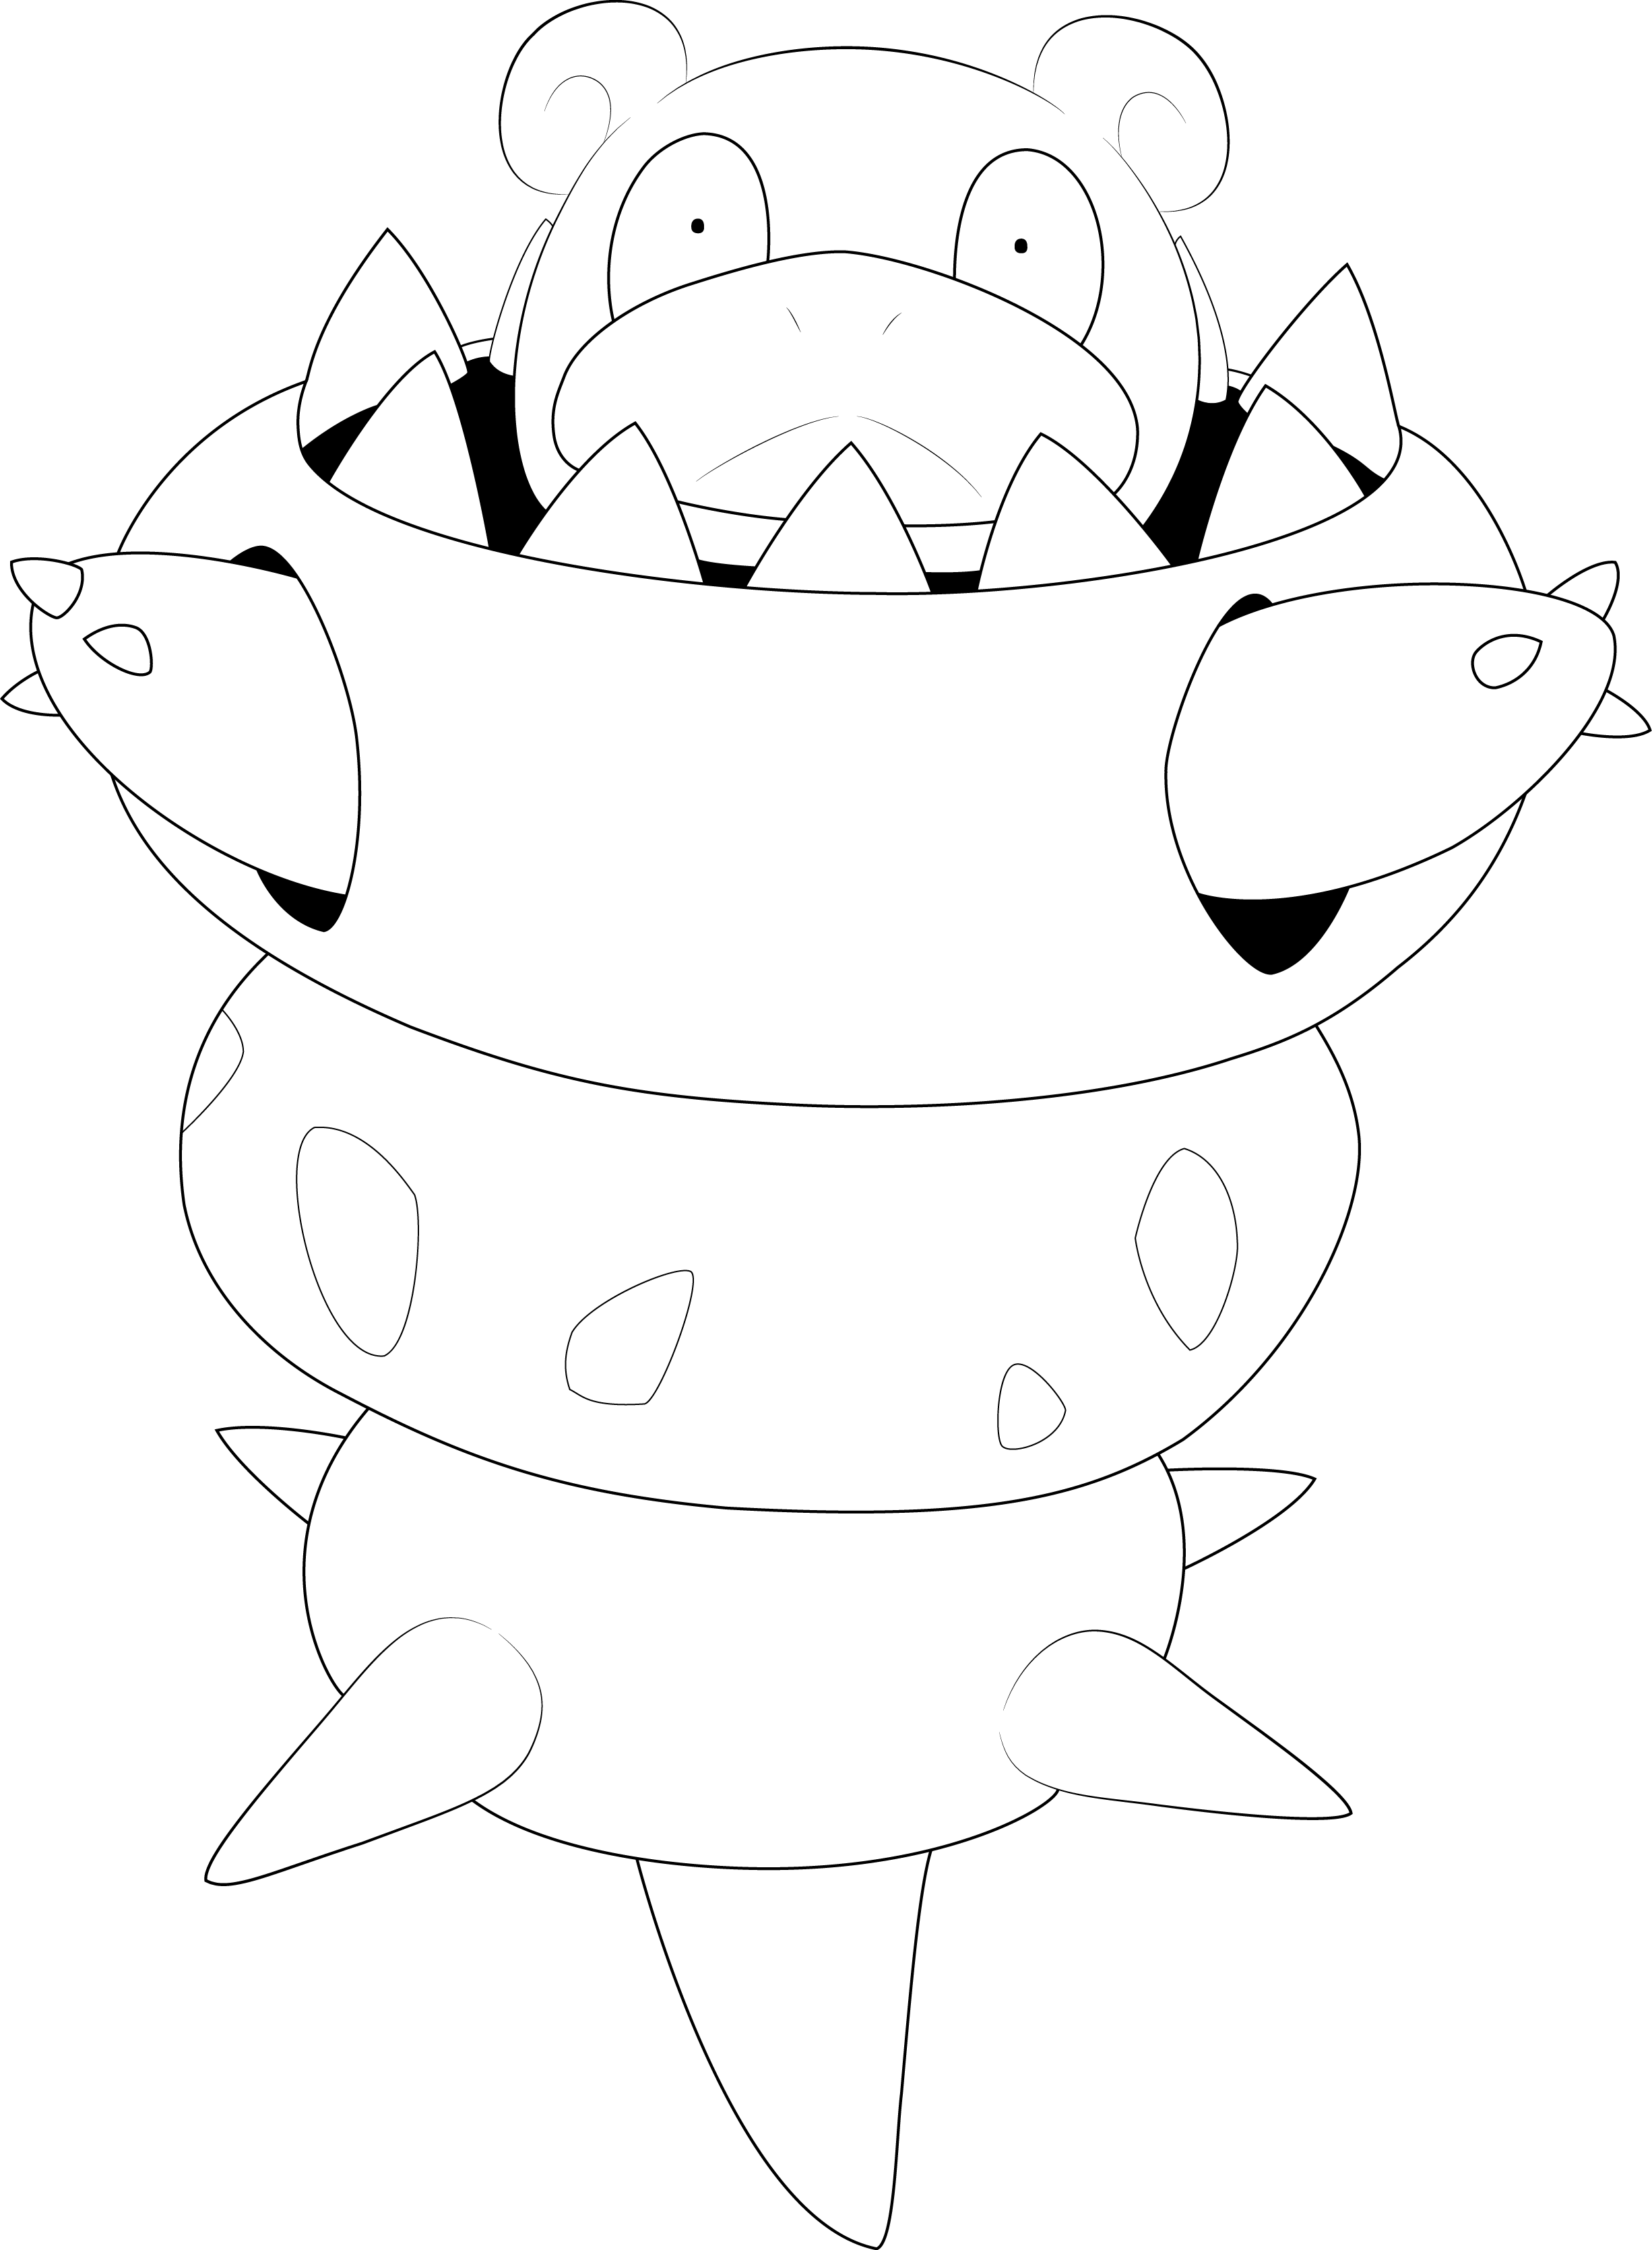 Pokemon Ausmalbilder Bisaflor : Mega Slowbro Line Art By Alcadeas1 Lineart Pokemon Detailed